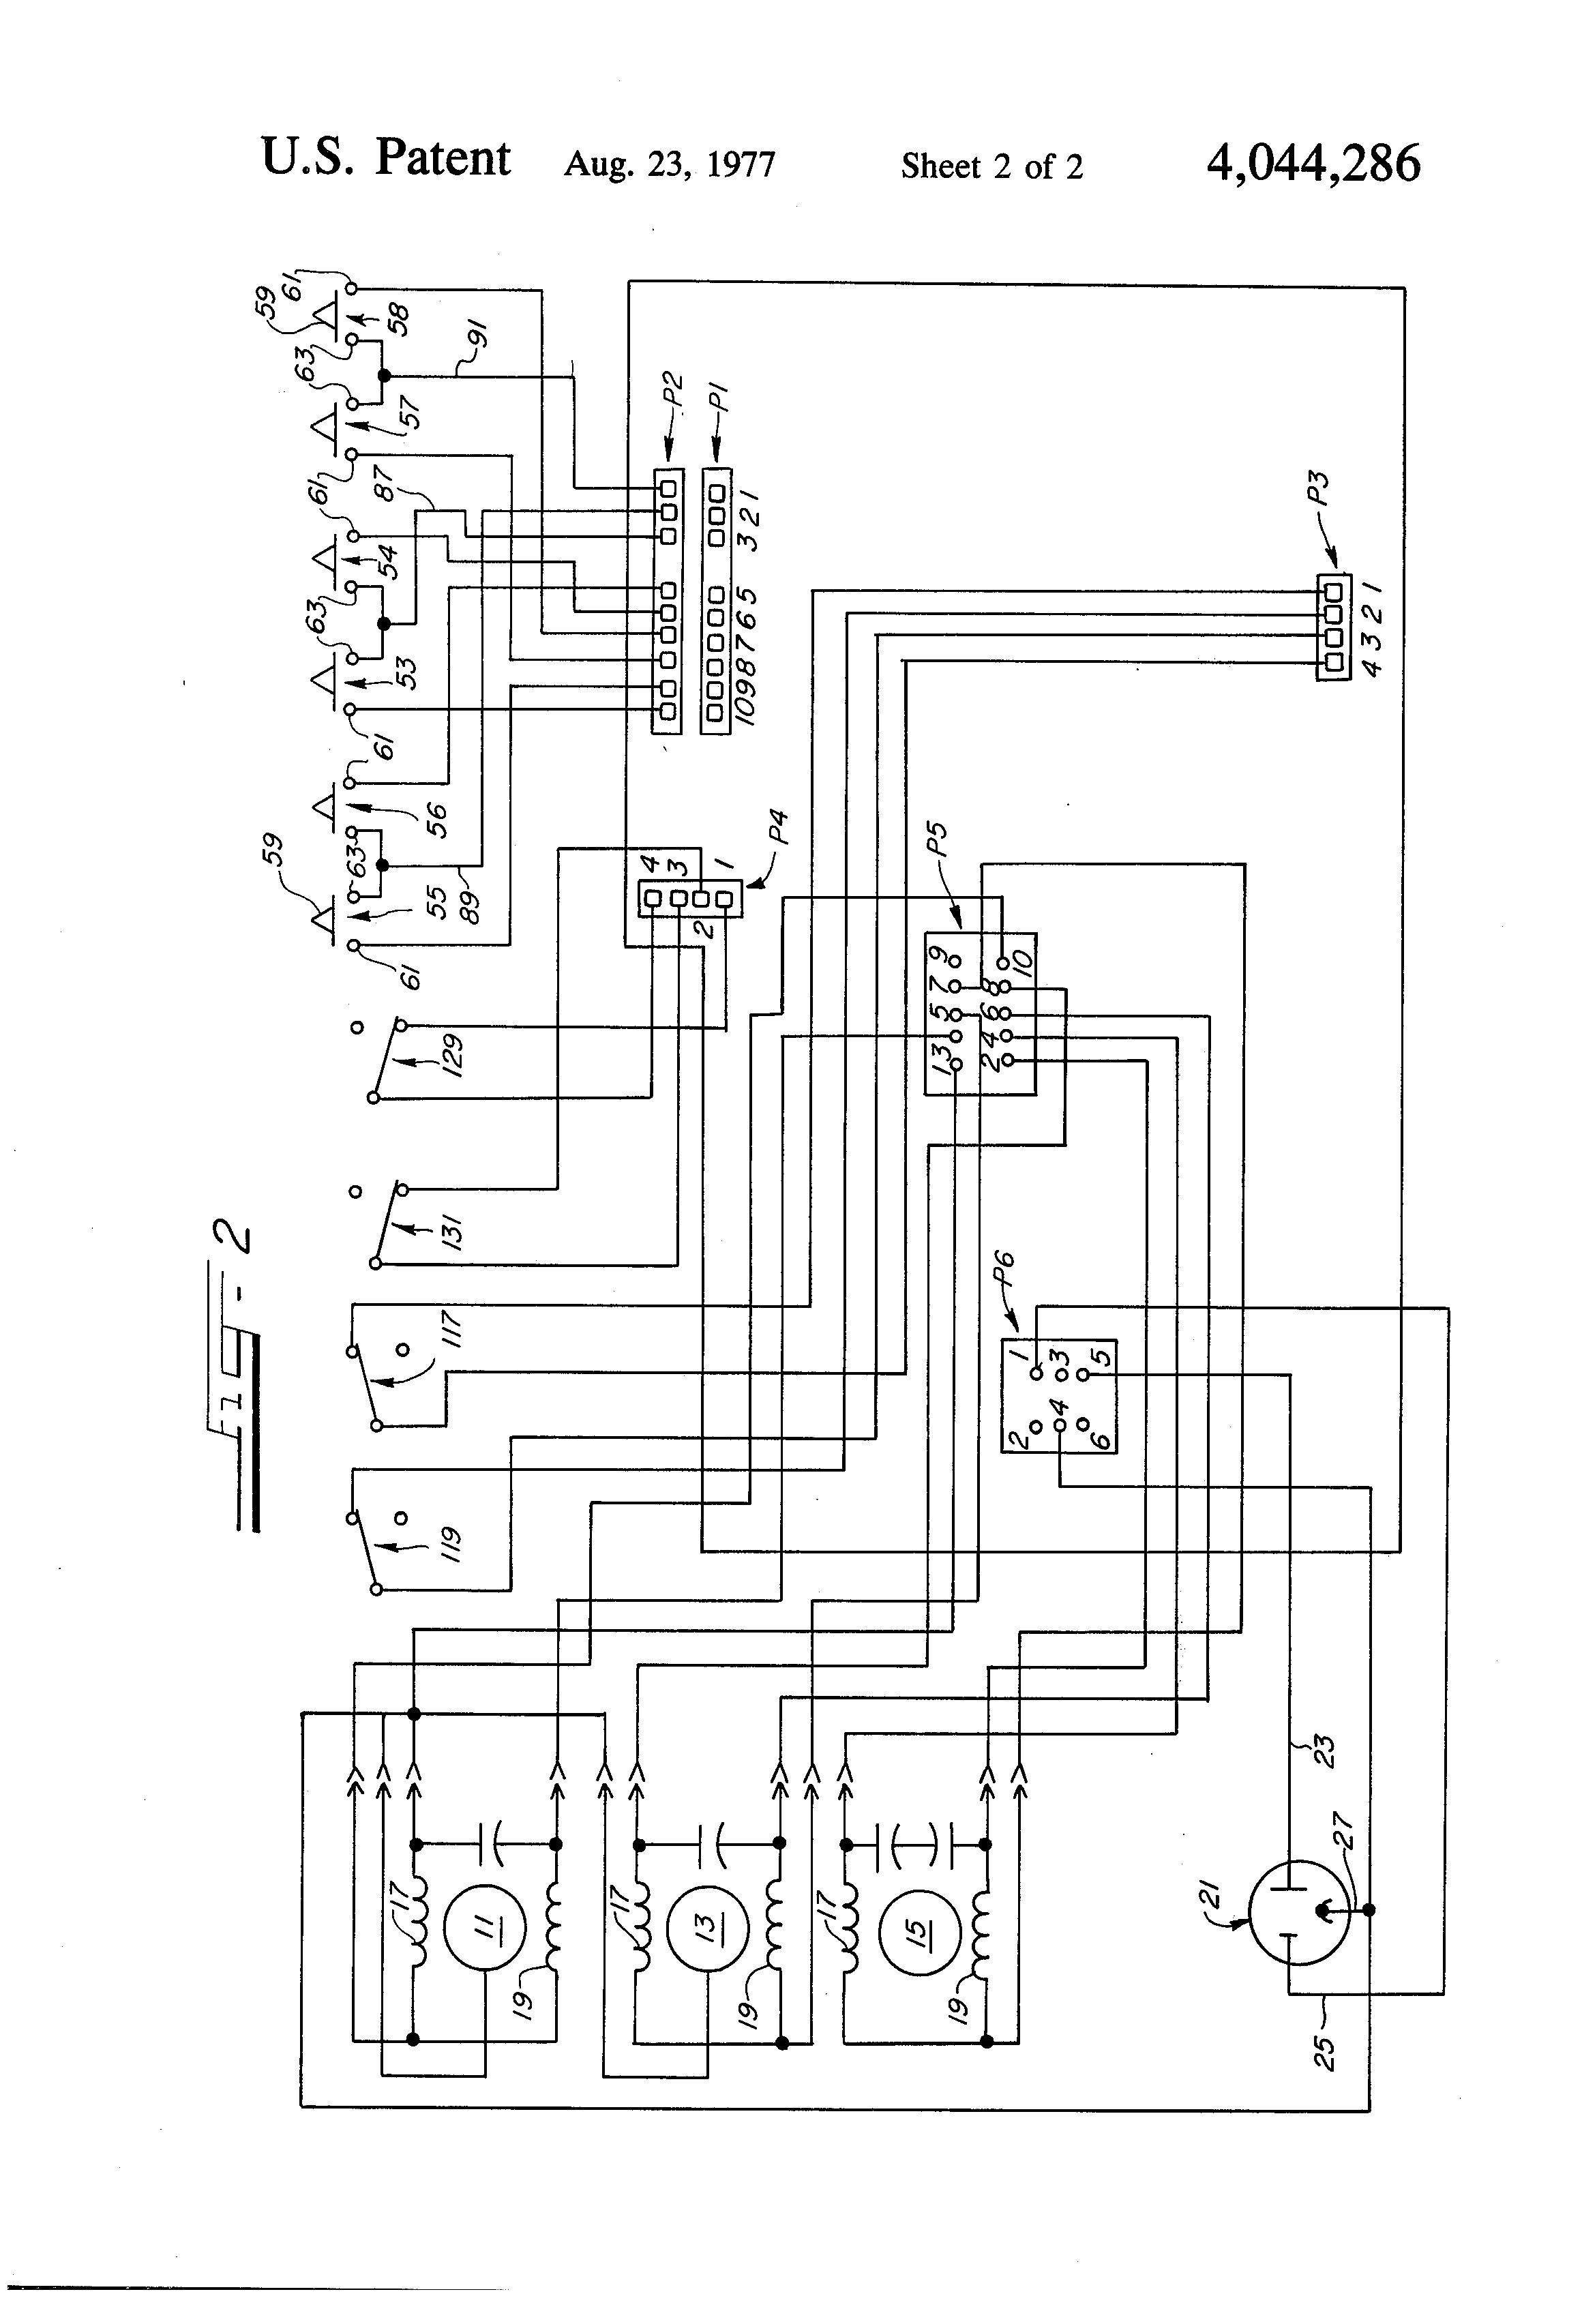 US4044286 2 hospital bed wiring diagram wiring diagram and schematic design wiring diagram for cm truck bed at aneh.co